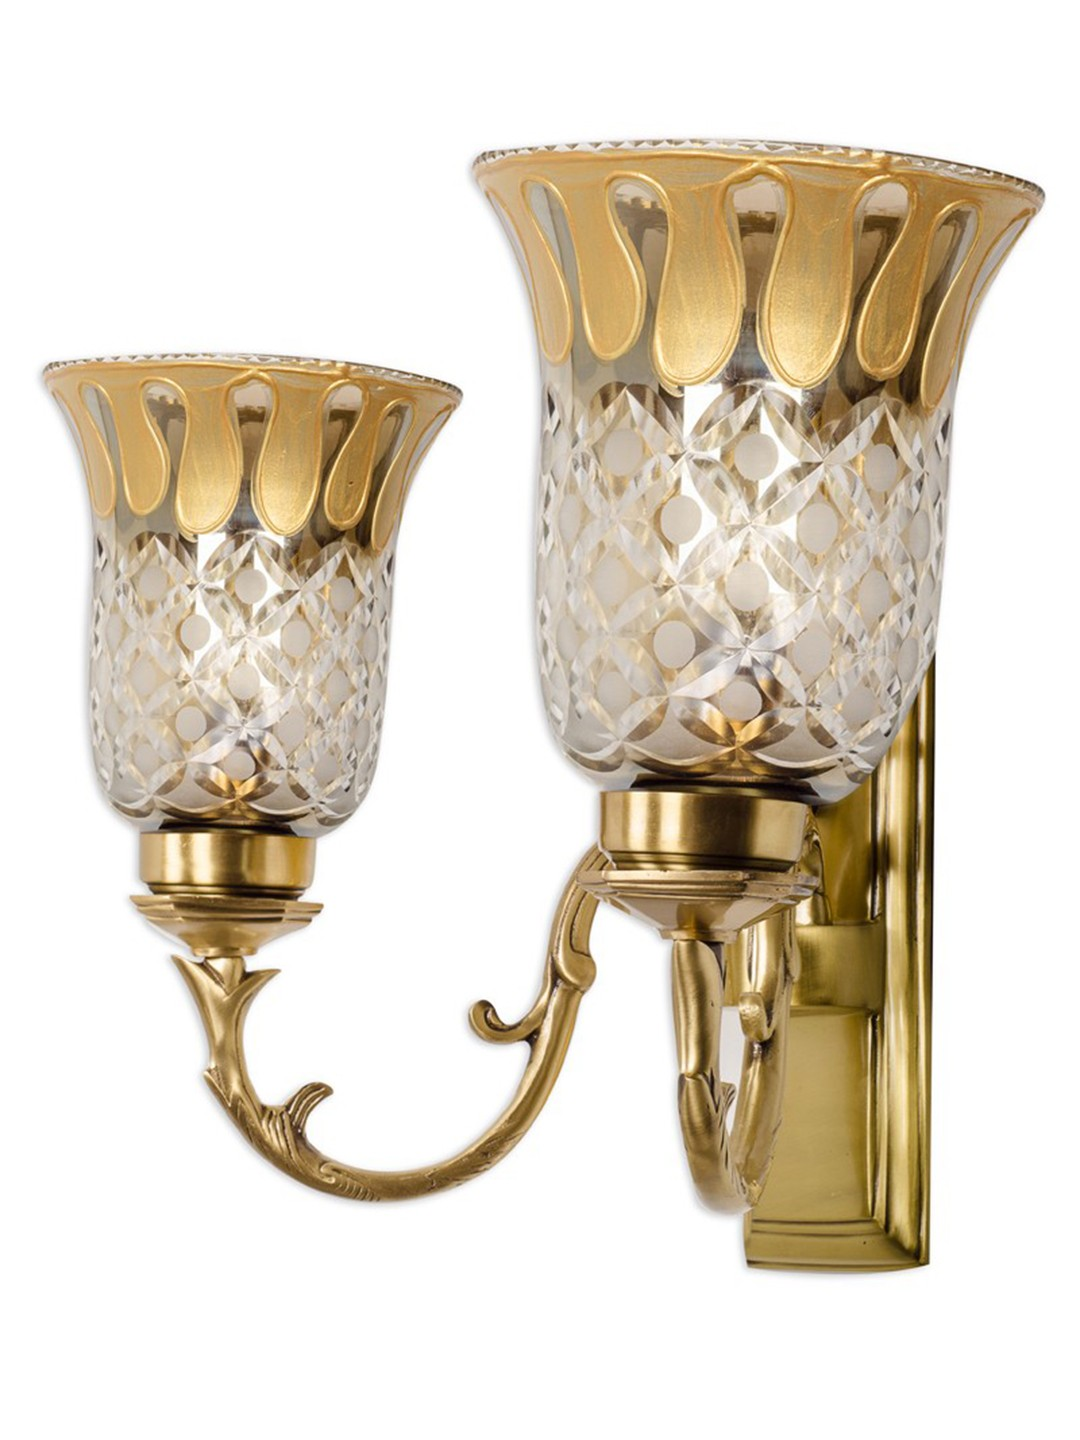 Rectangular Brass with Smoke Cut Glass Double Wall Sconce